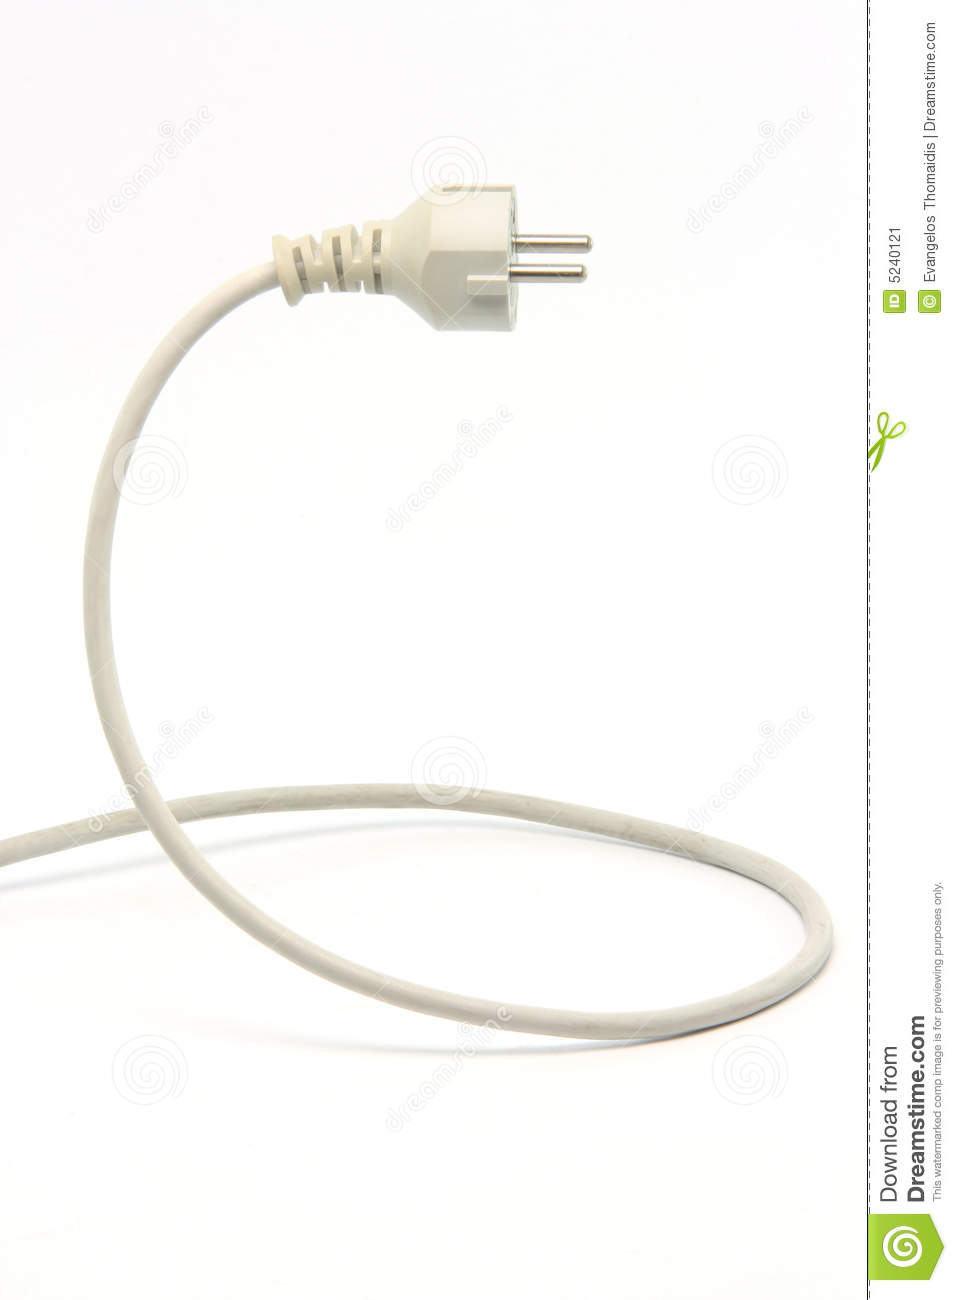 RPFT21 furthermore Stock Image White Power Cable Image5240121 likewise Passat B5 3b6 Convenience Wiring Diagram furthermore Mag ic likewise About. on black and white electric plug